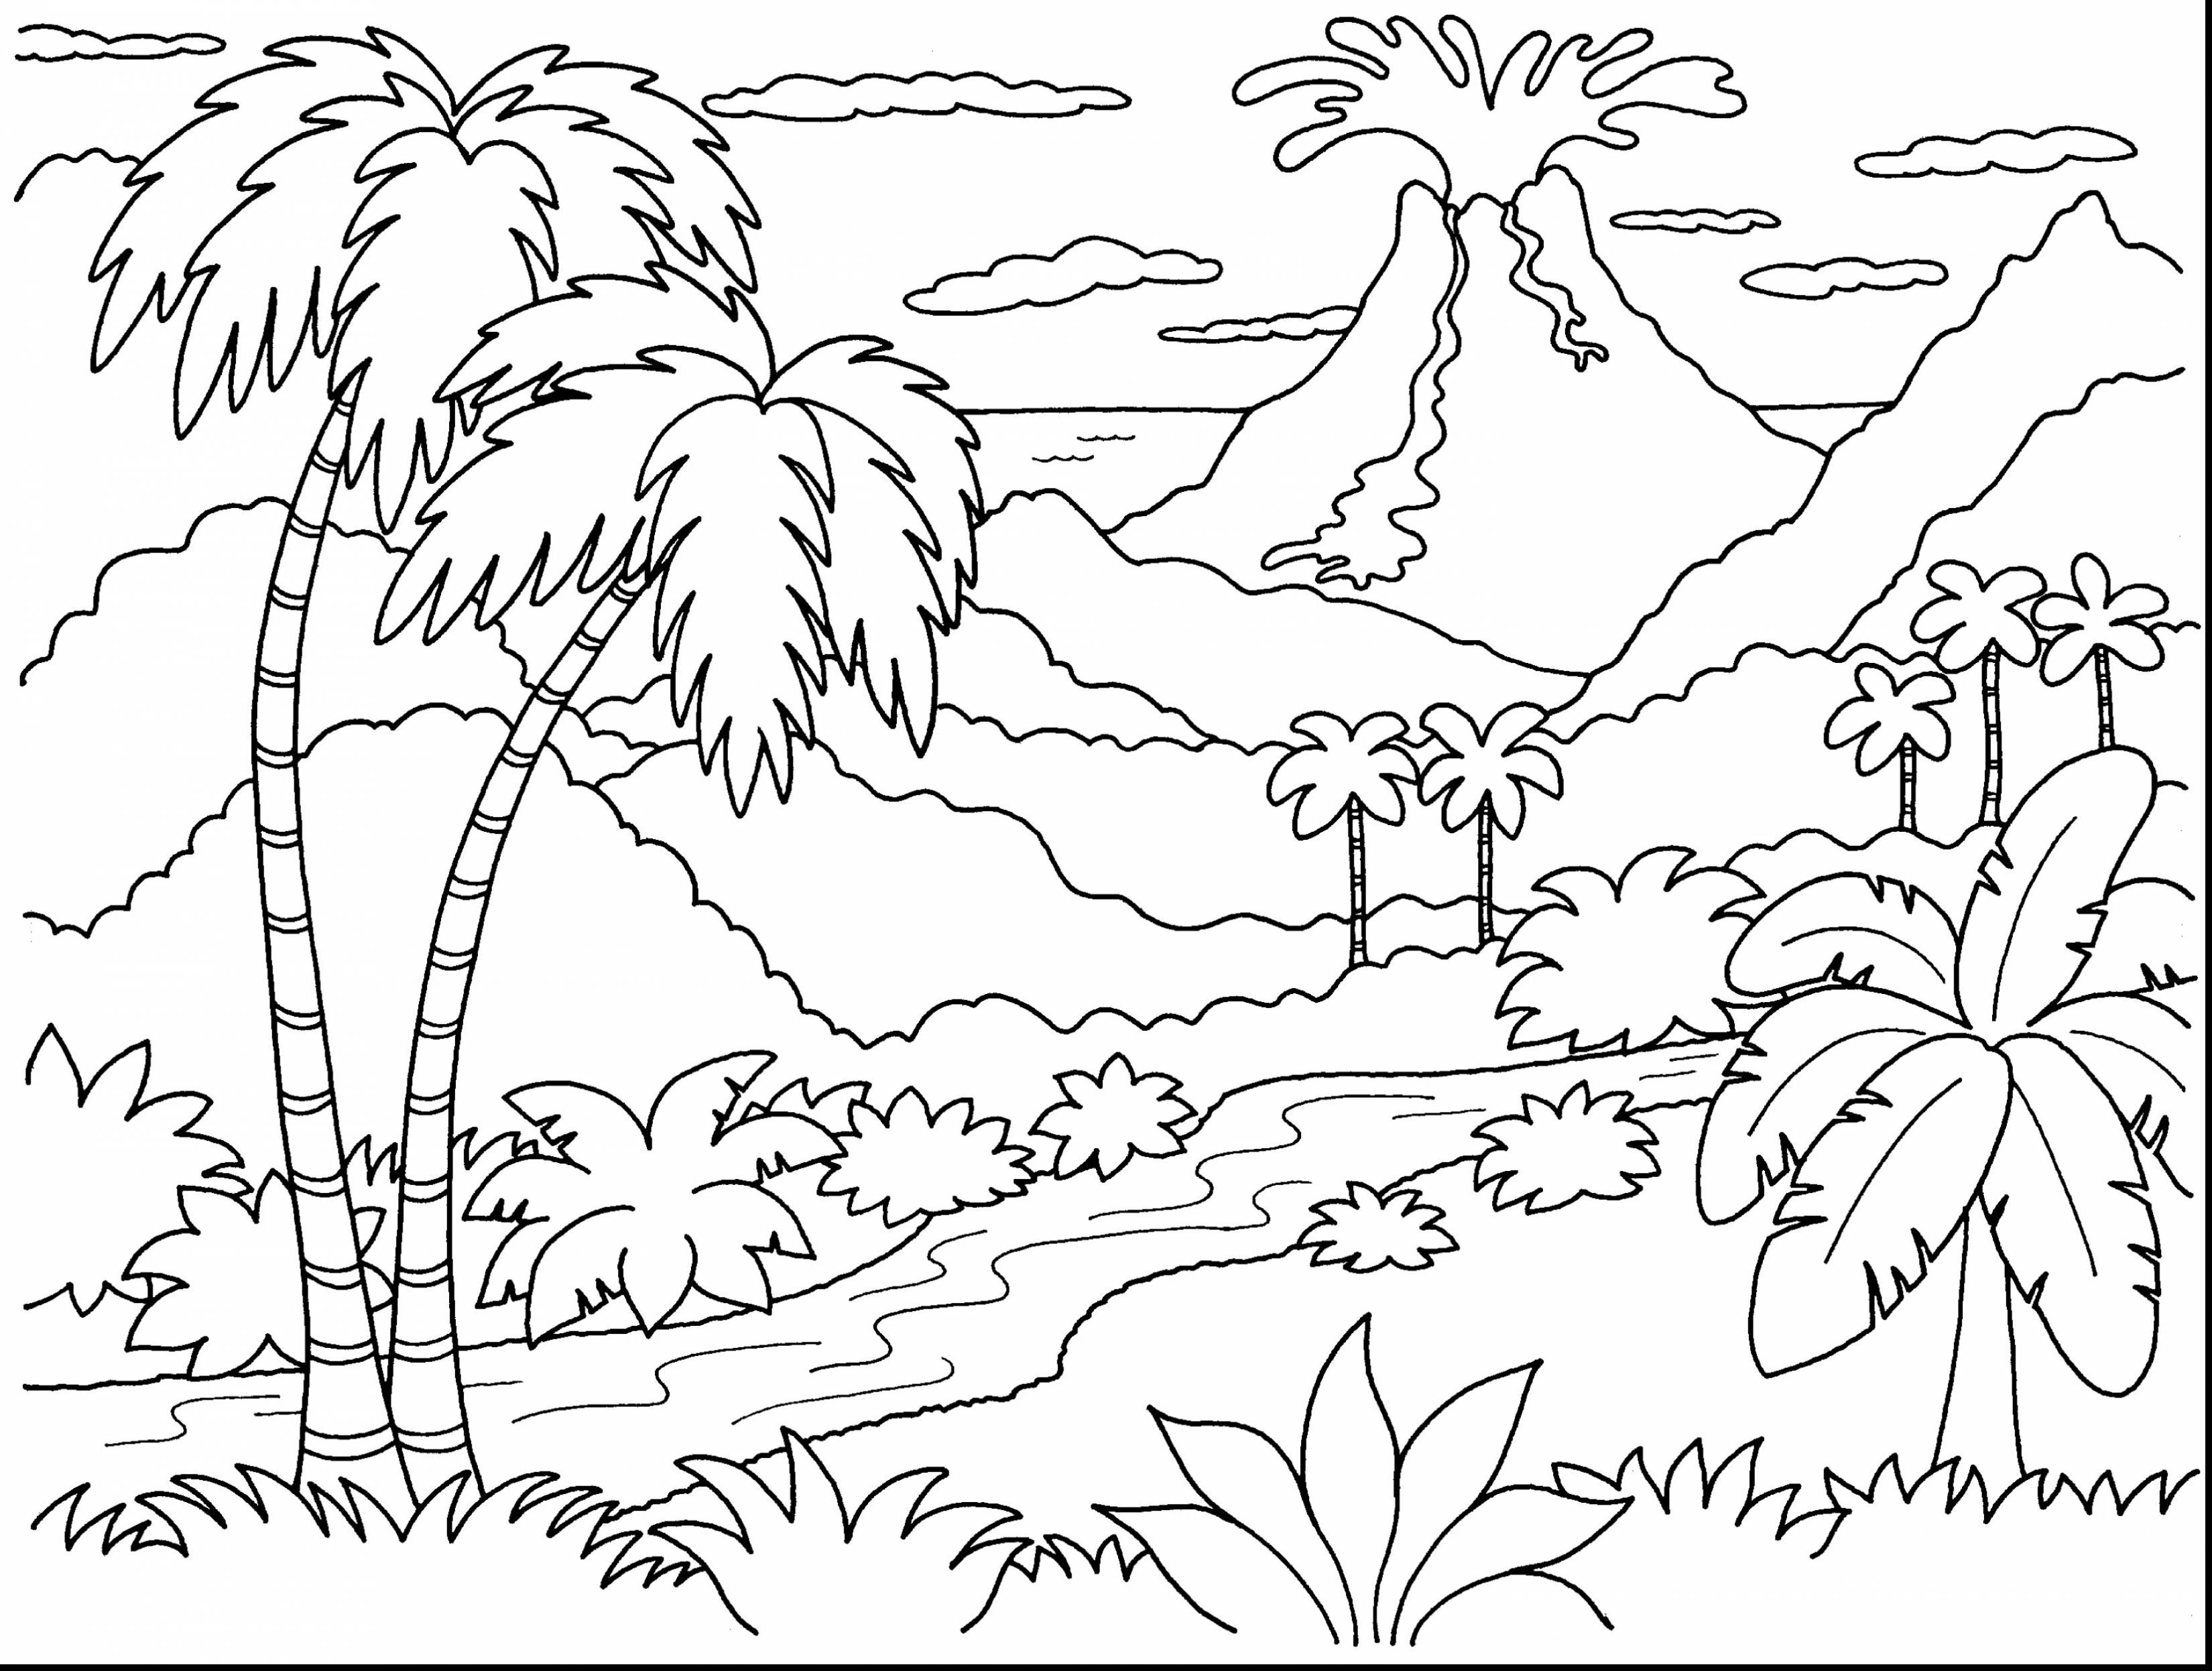 Volcano in the forest Coloring Page